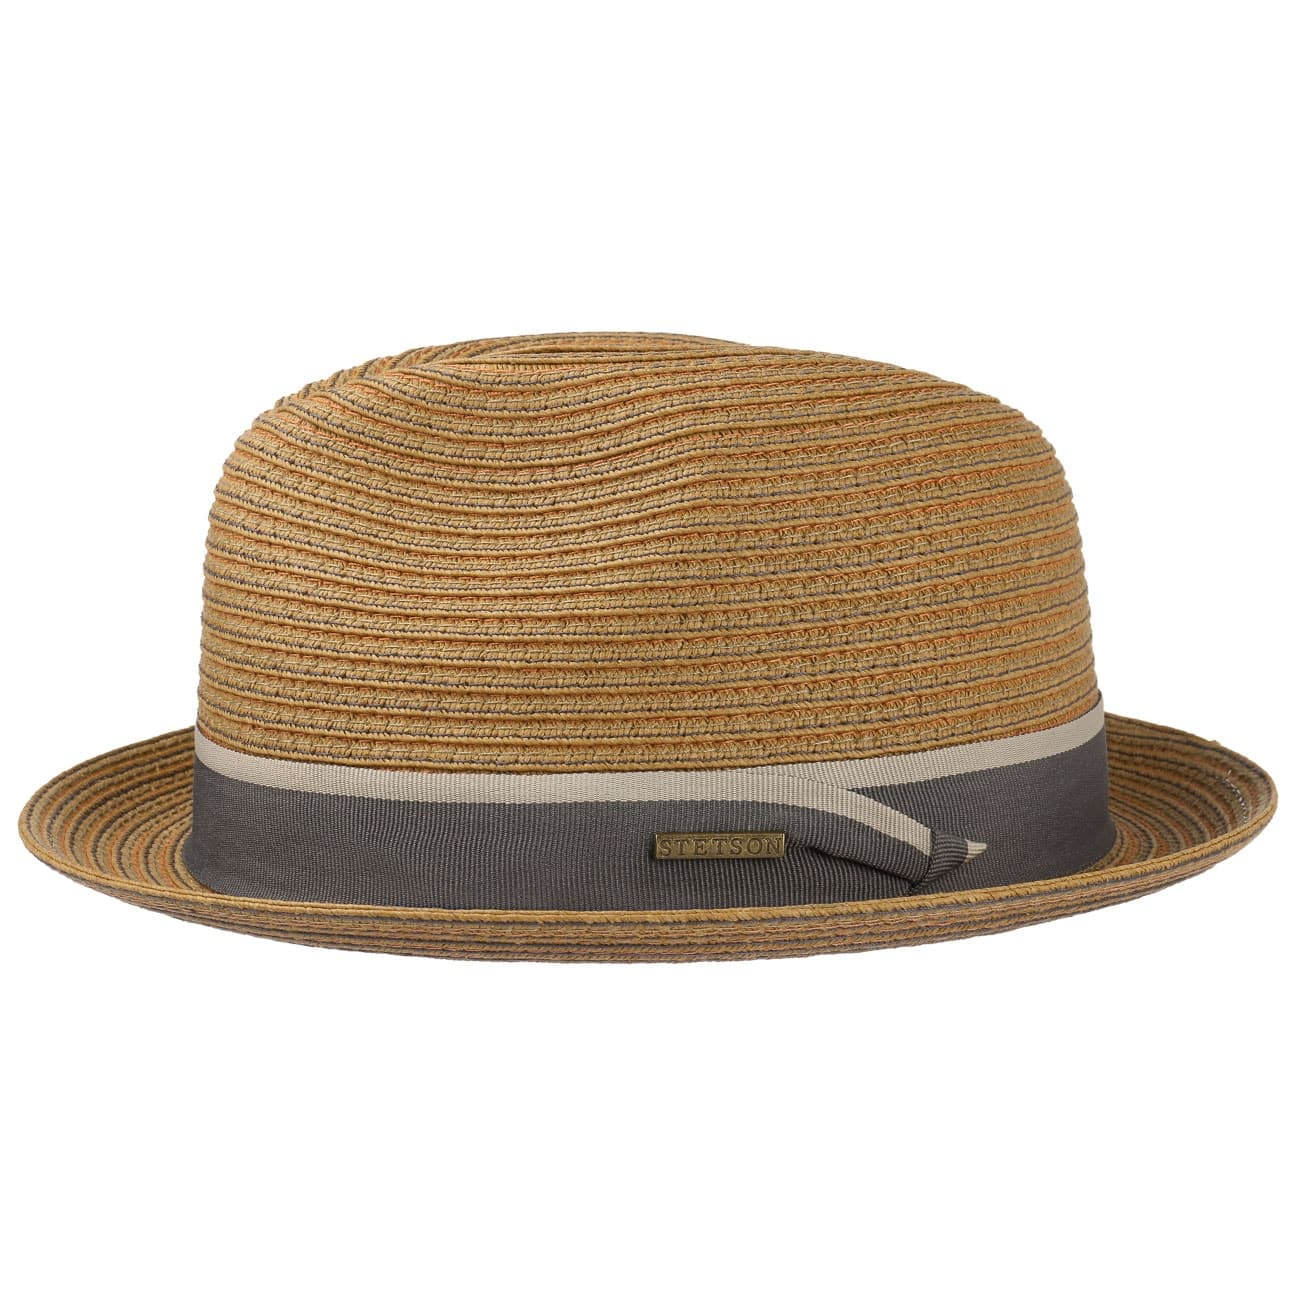 Colourstitch Toyo Player Hat by Stetson  sun hat